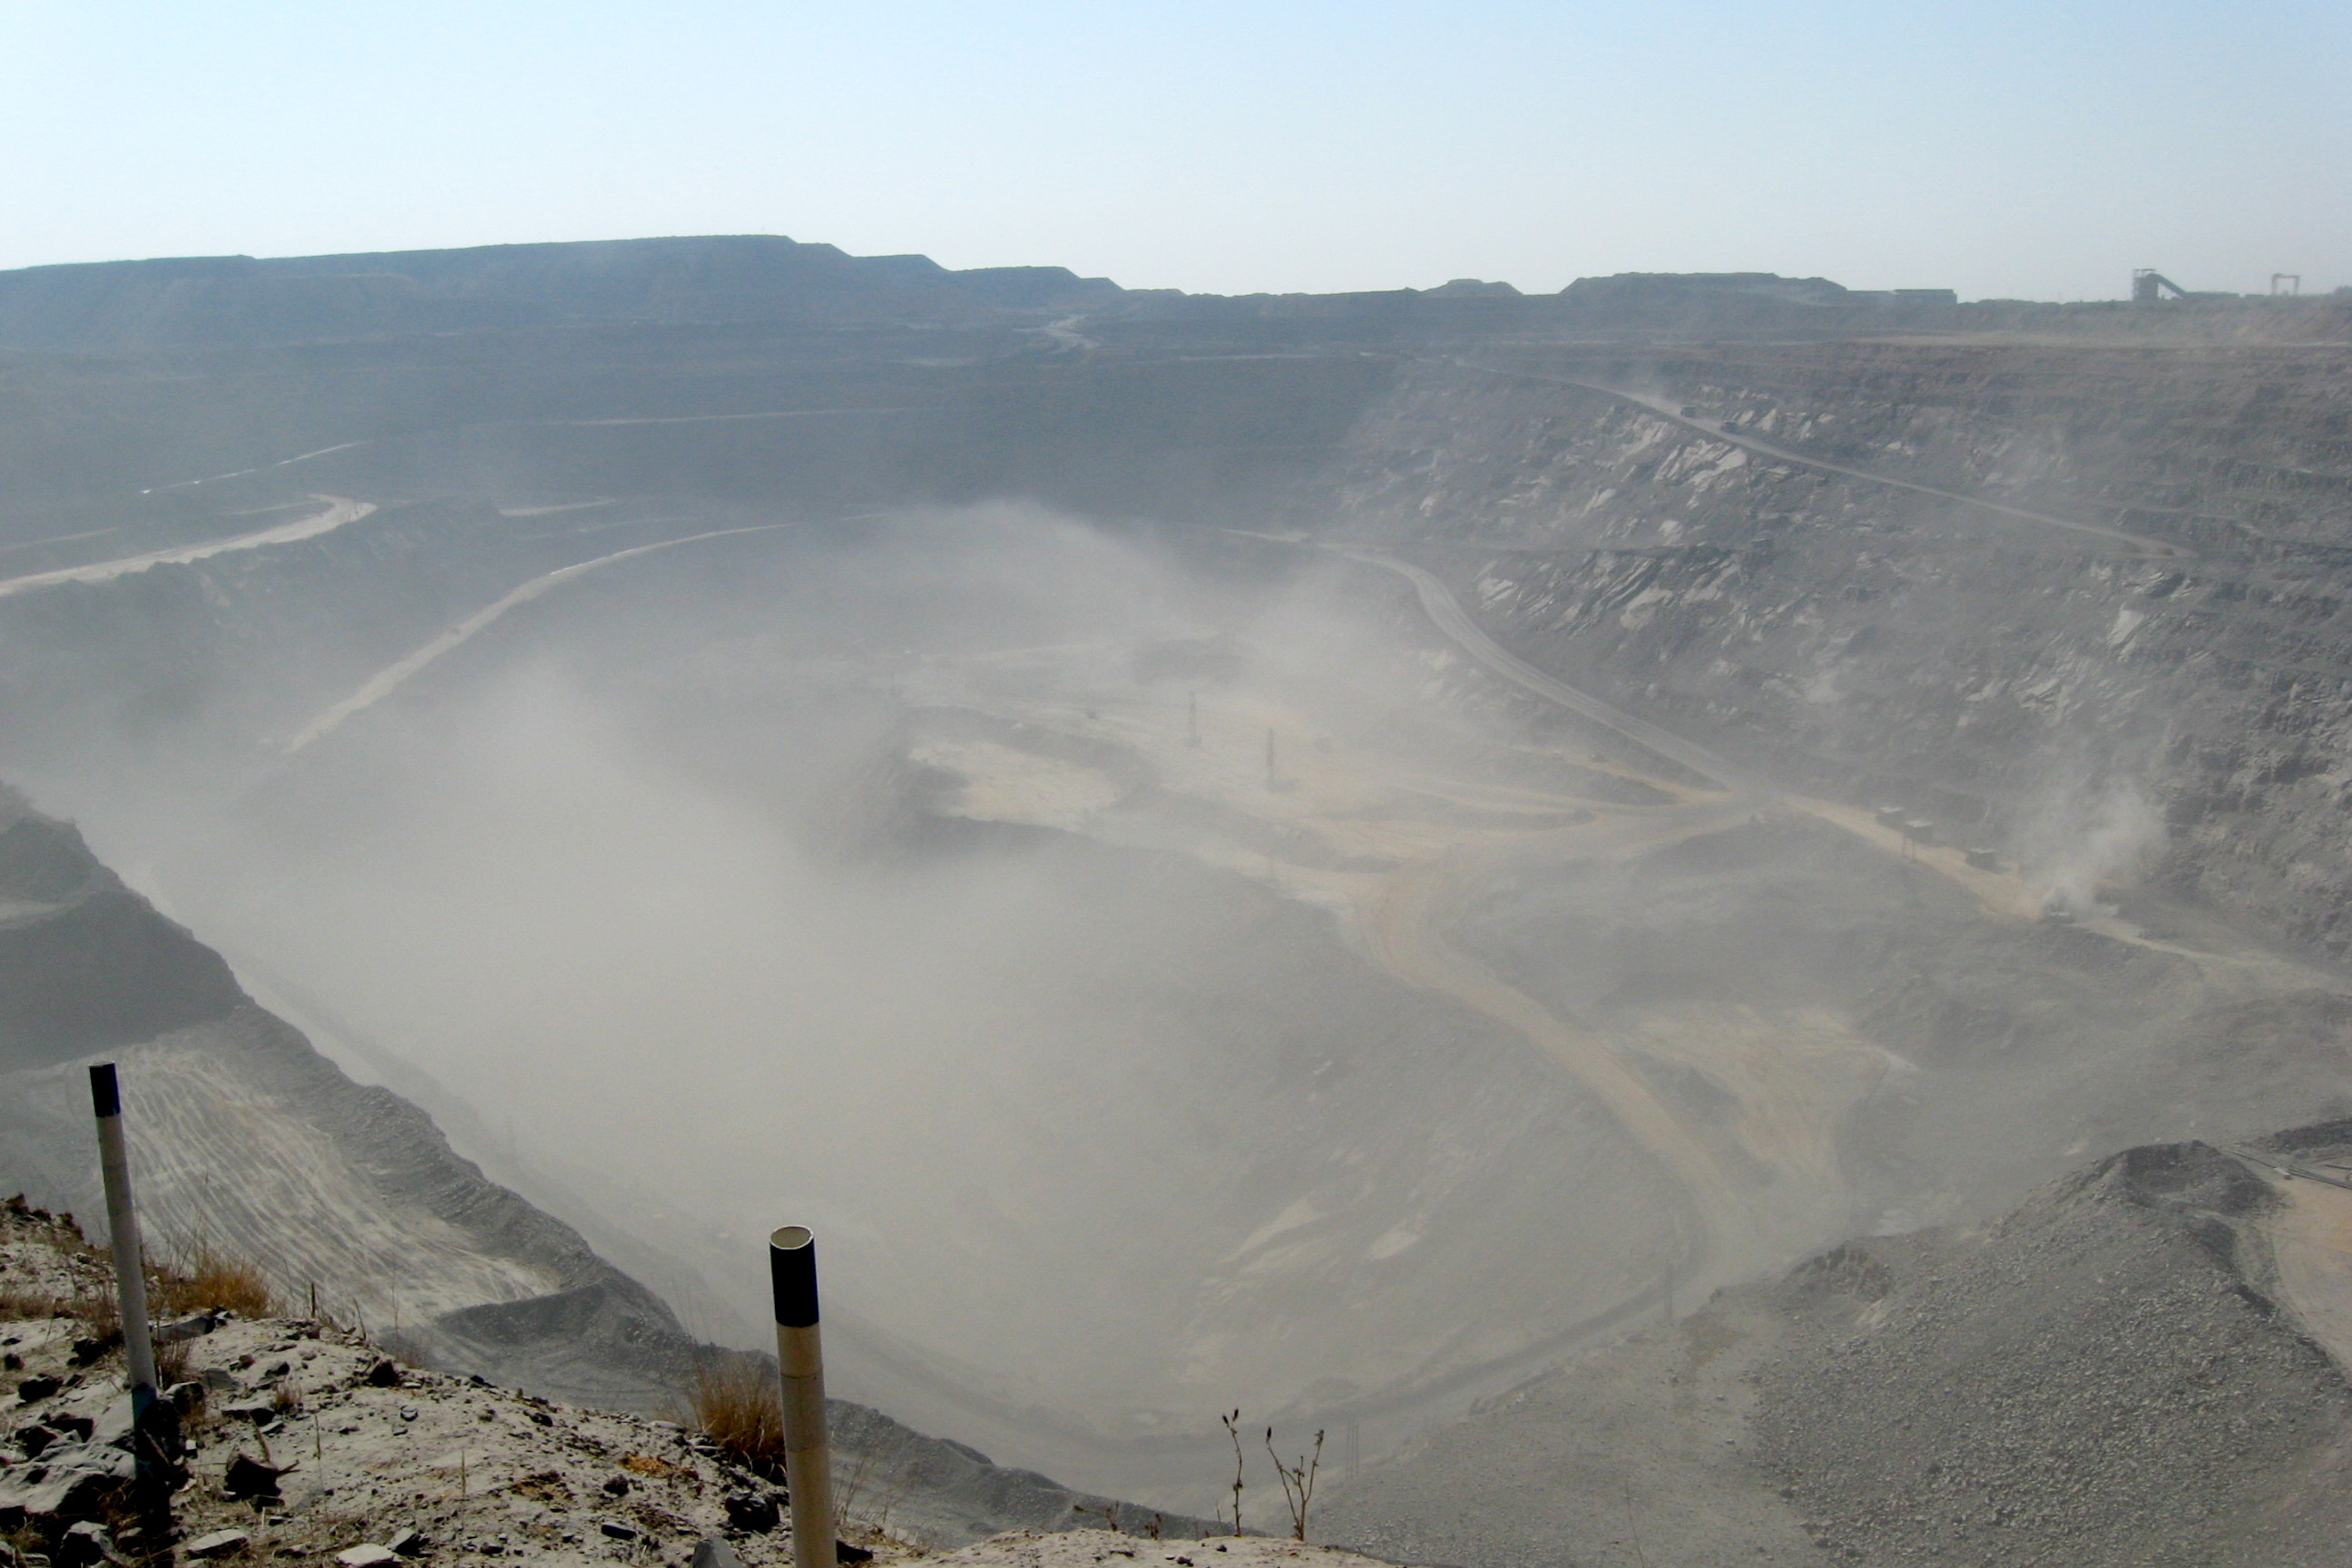 https://upload.wikimedia.org/wikipedia/commons/d/d6/Jwaneng_Open_Mine.jpg